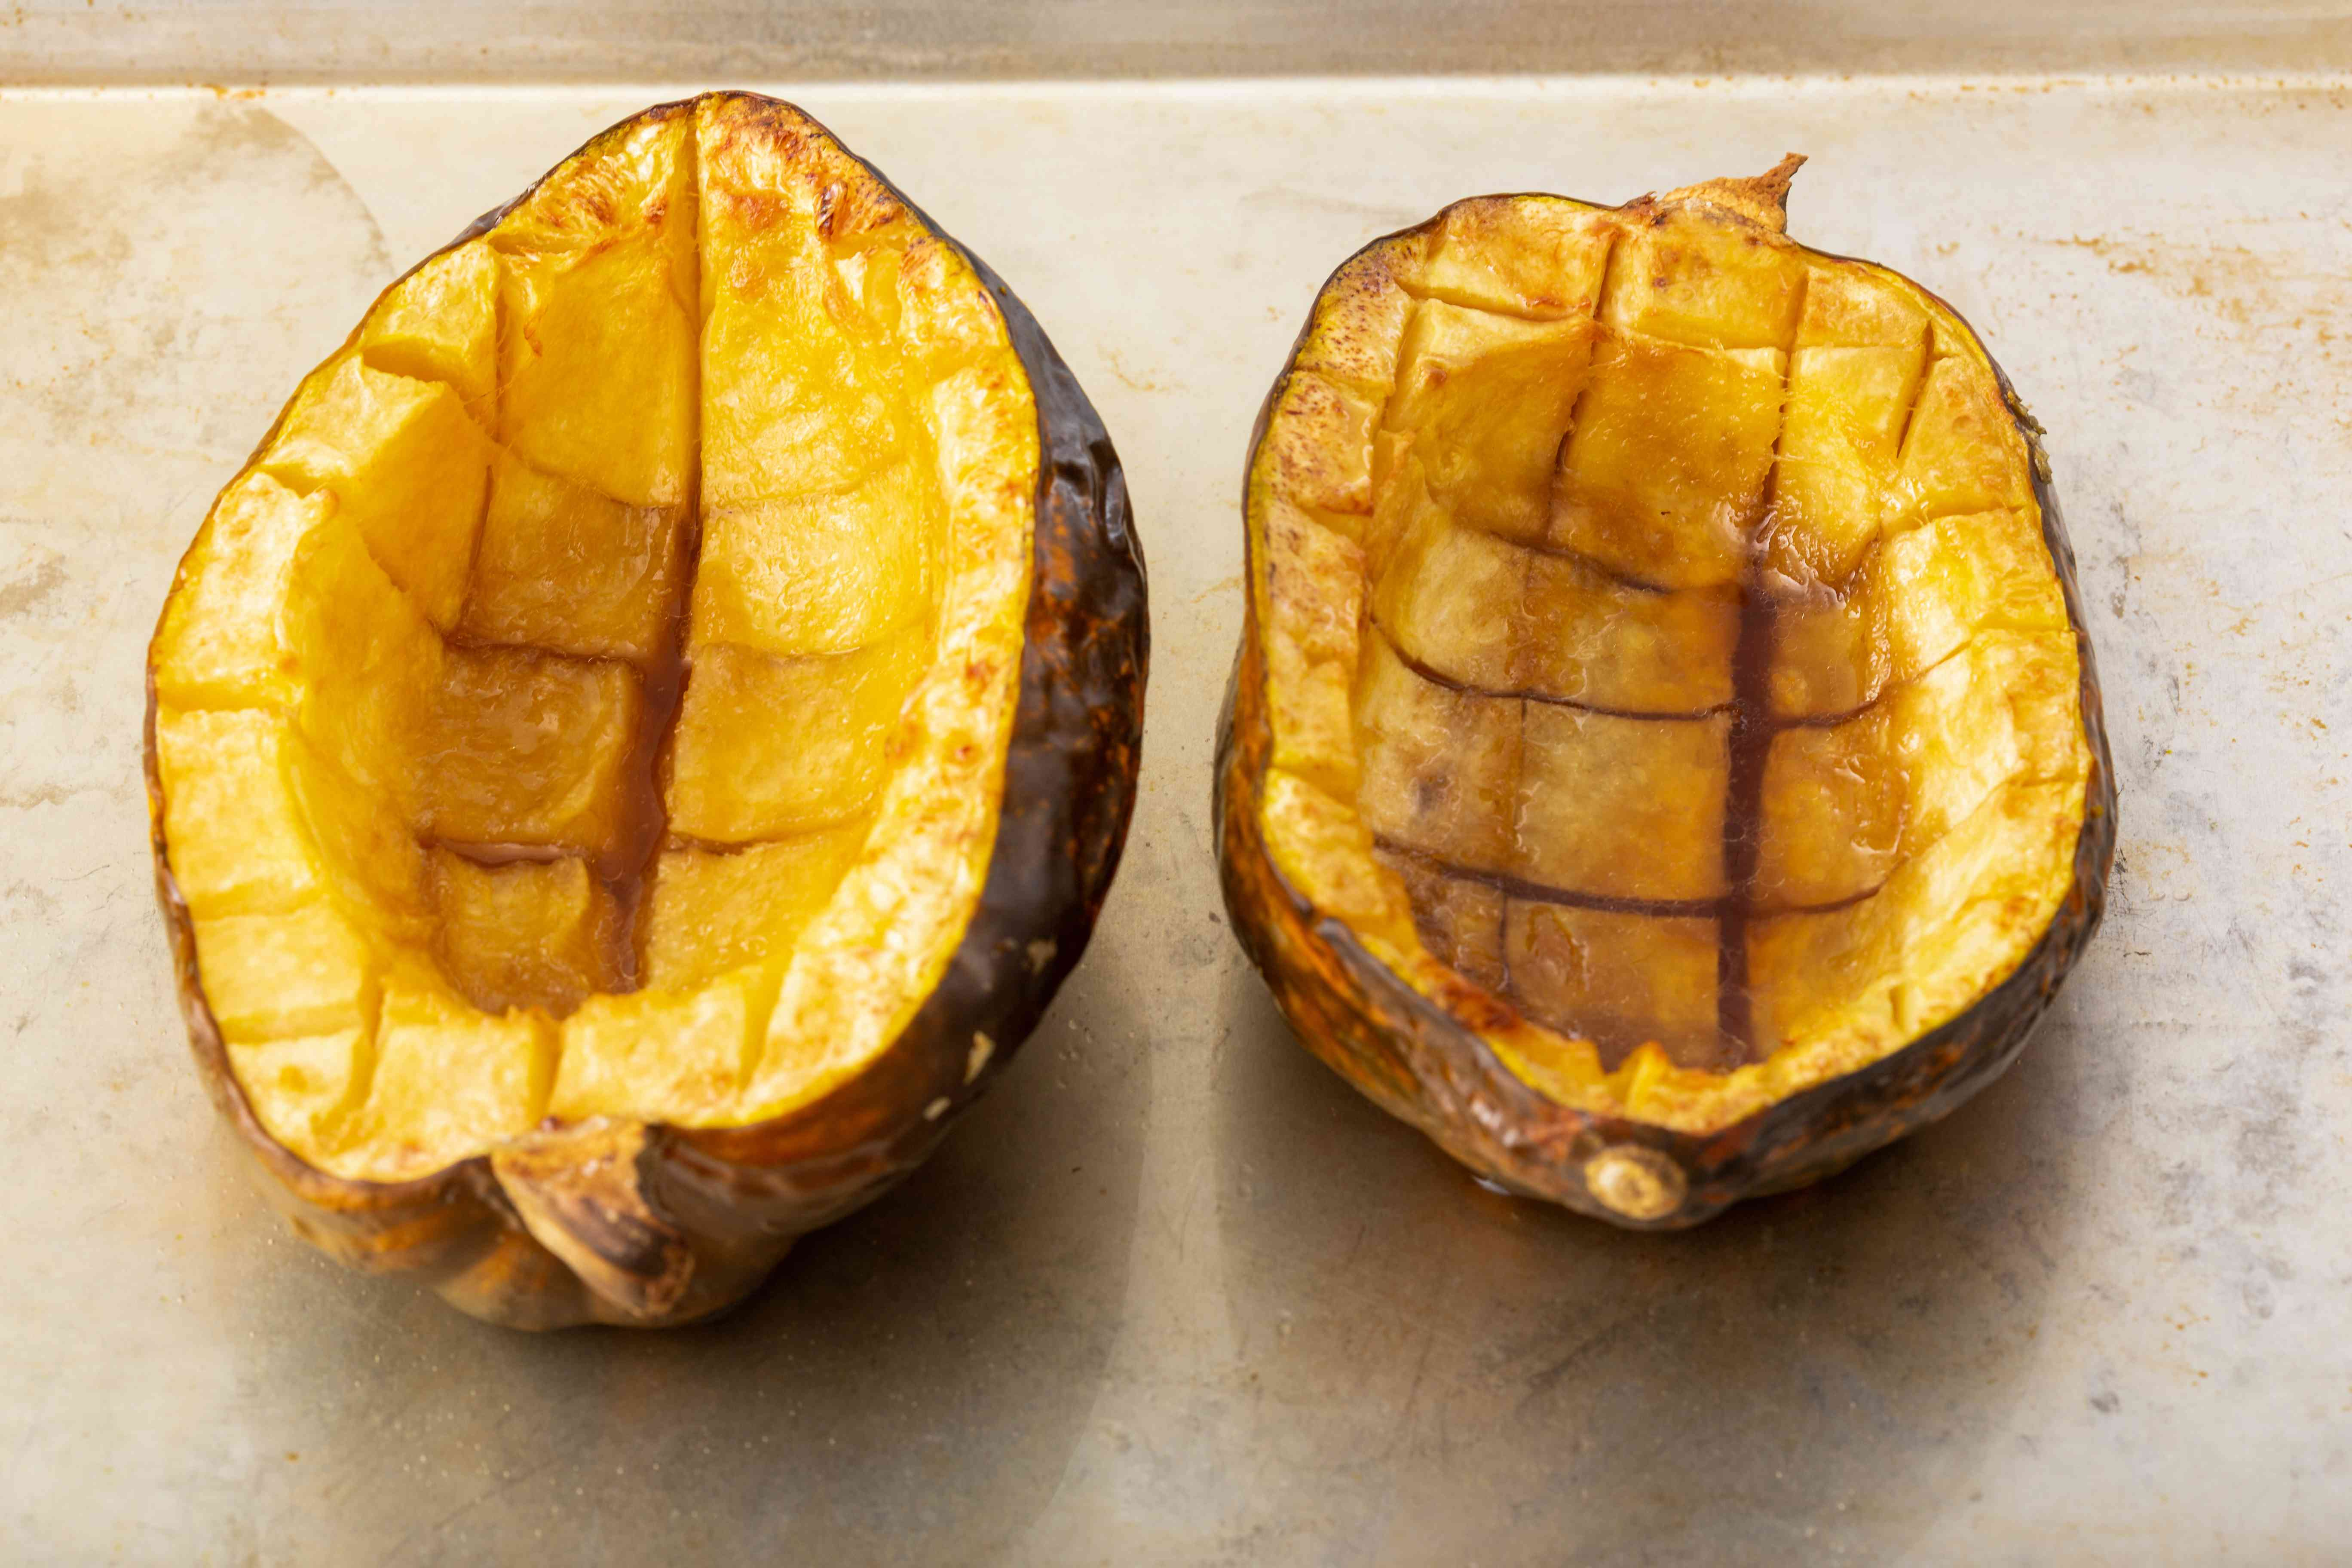 Two halves of roasted acorn squash on a counter.